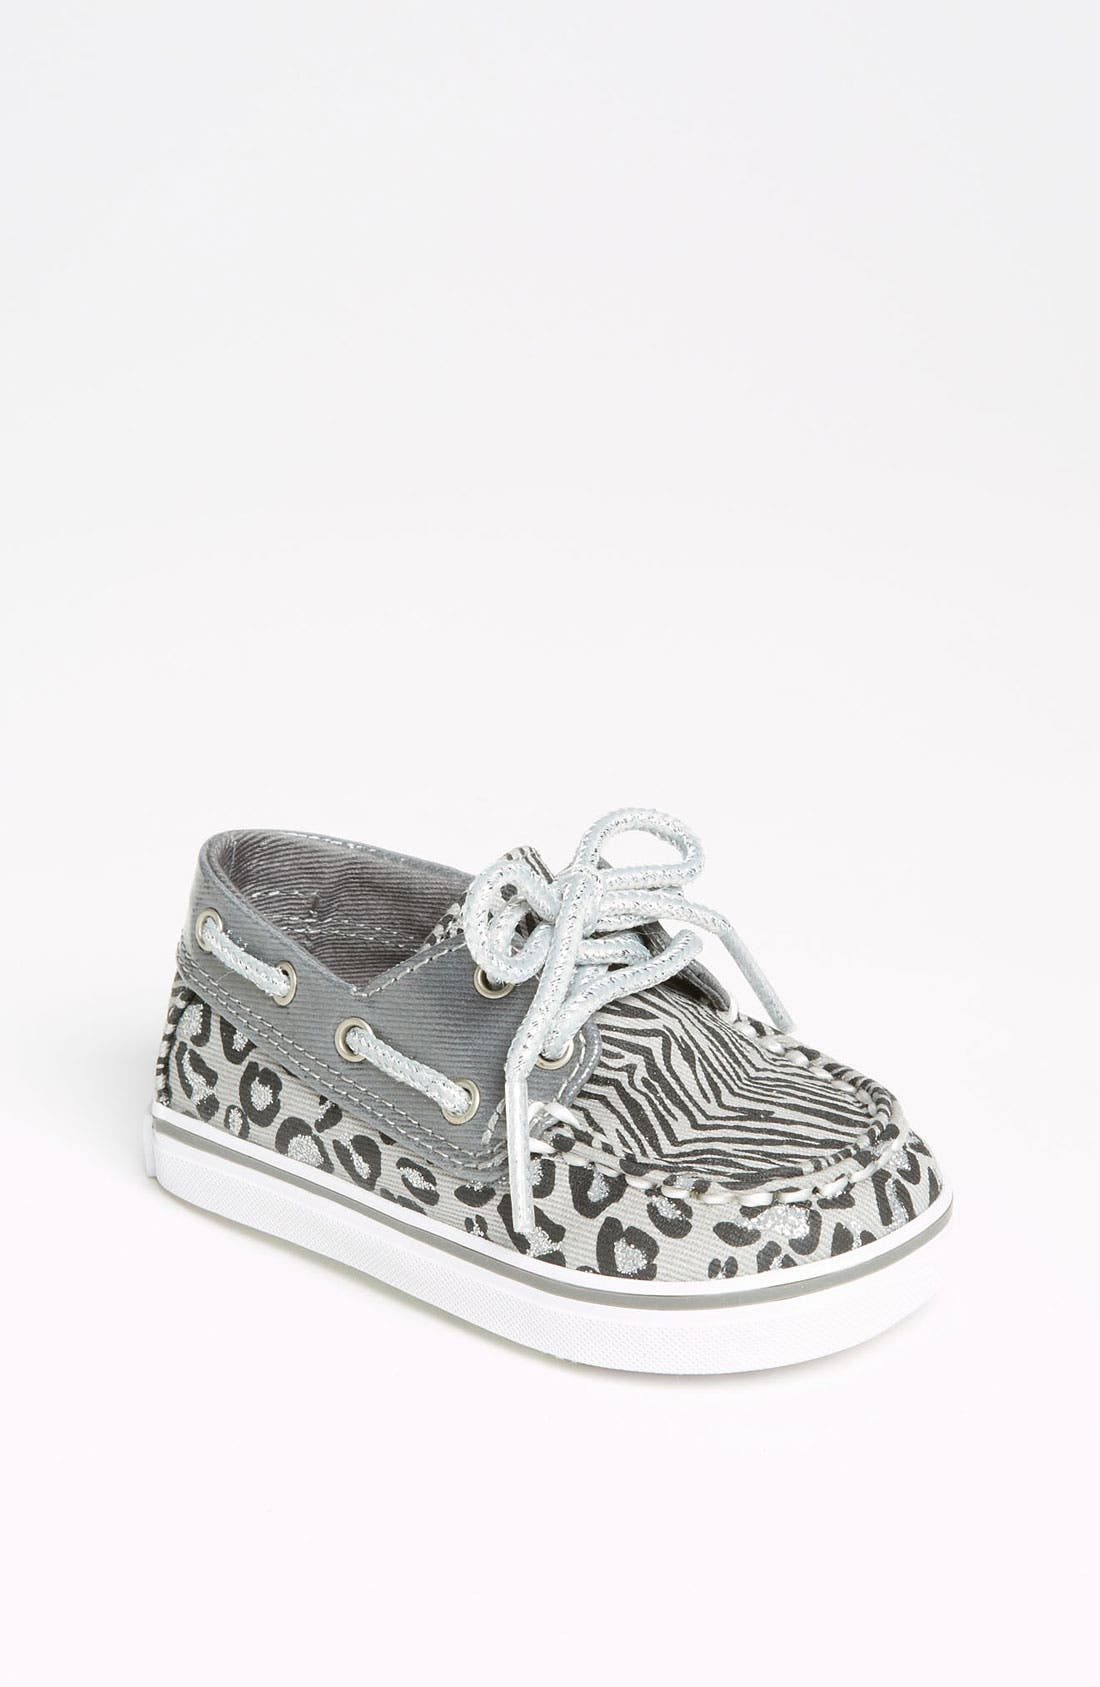 Main Image - Sperry Top-Sider® 'Bahama' Crib Shoe (Baby)